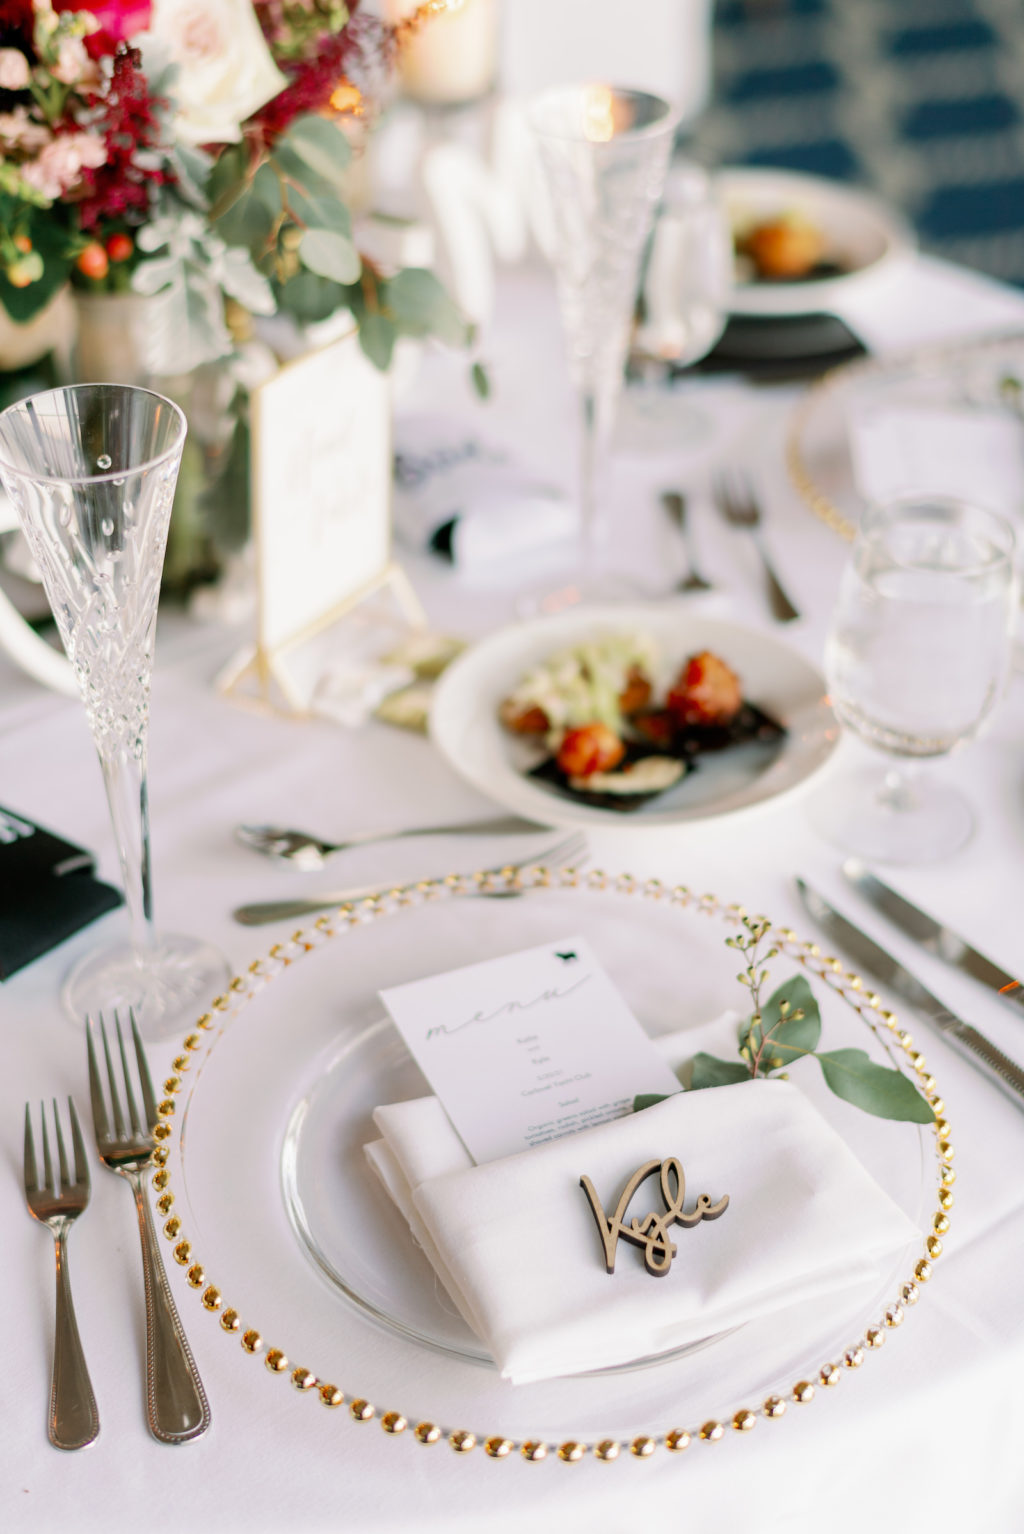 Romantic Rustic Wedding Reception Decor, Gold Beaded and Clear Charger, White Linen Napkin, Wooden Laser Cut Name Place Card   Tampa Bay Wedding Rentals A Chair Affair